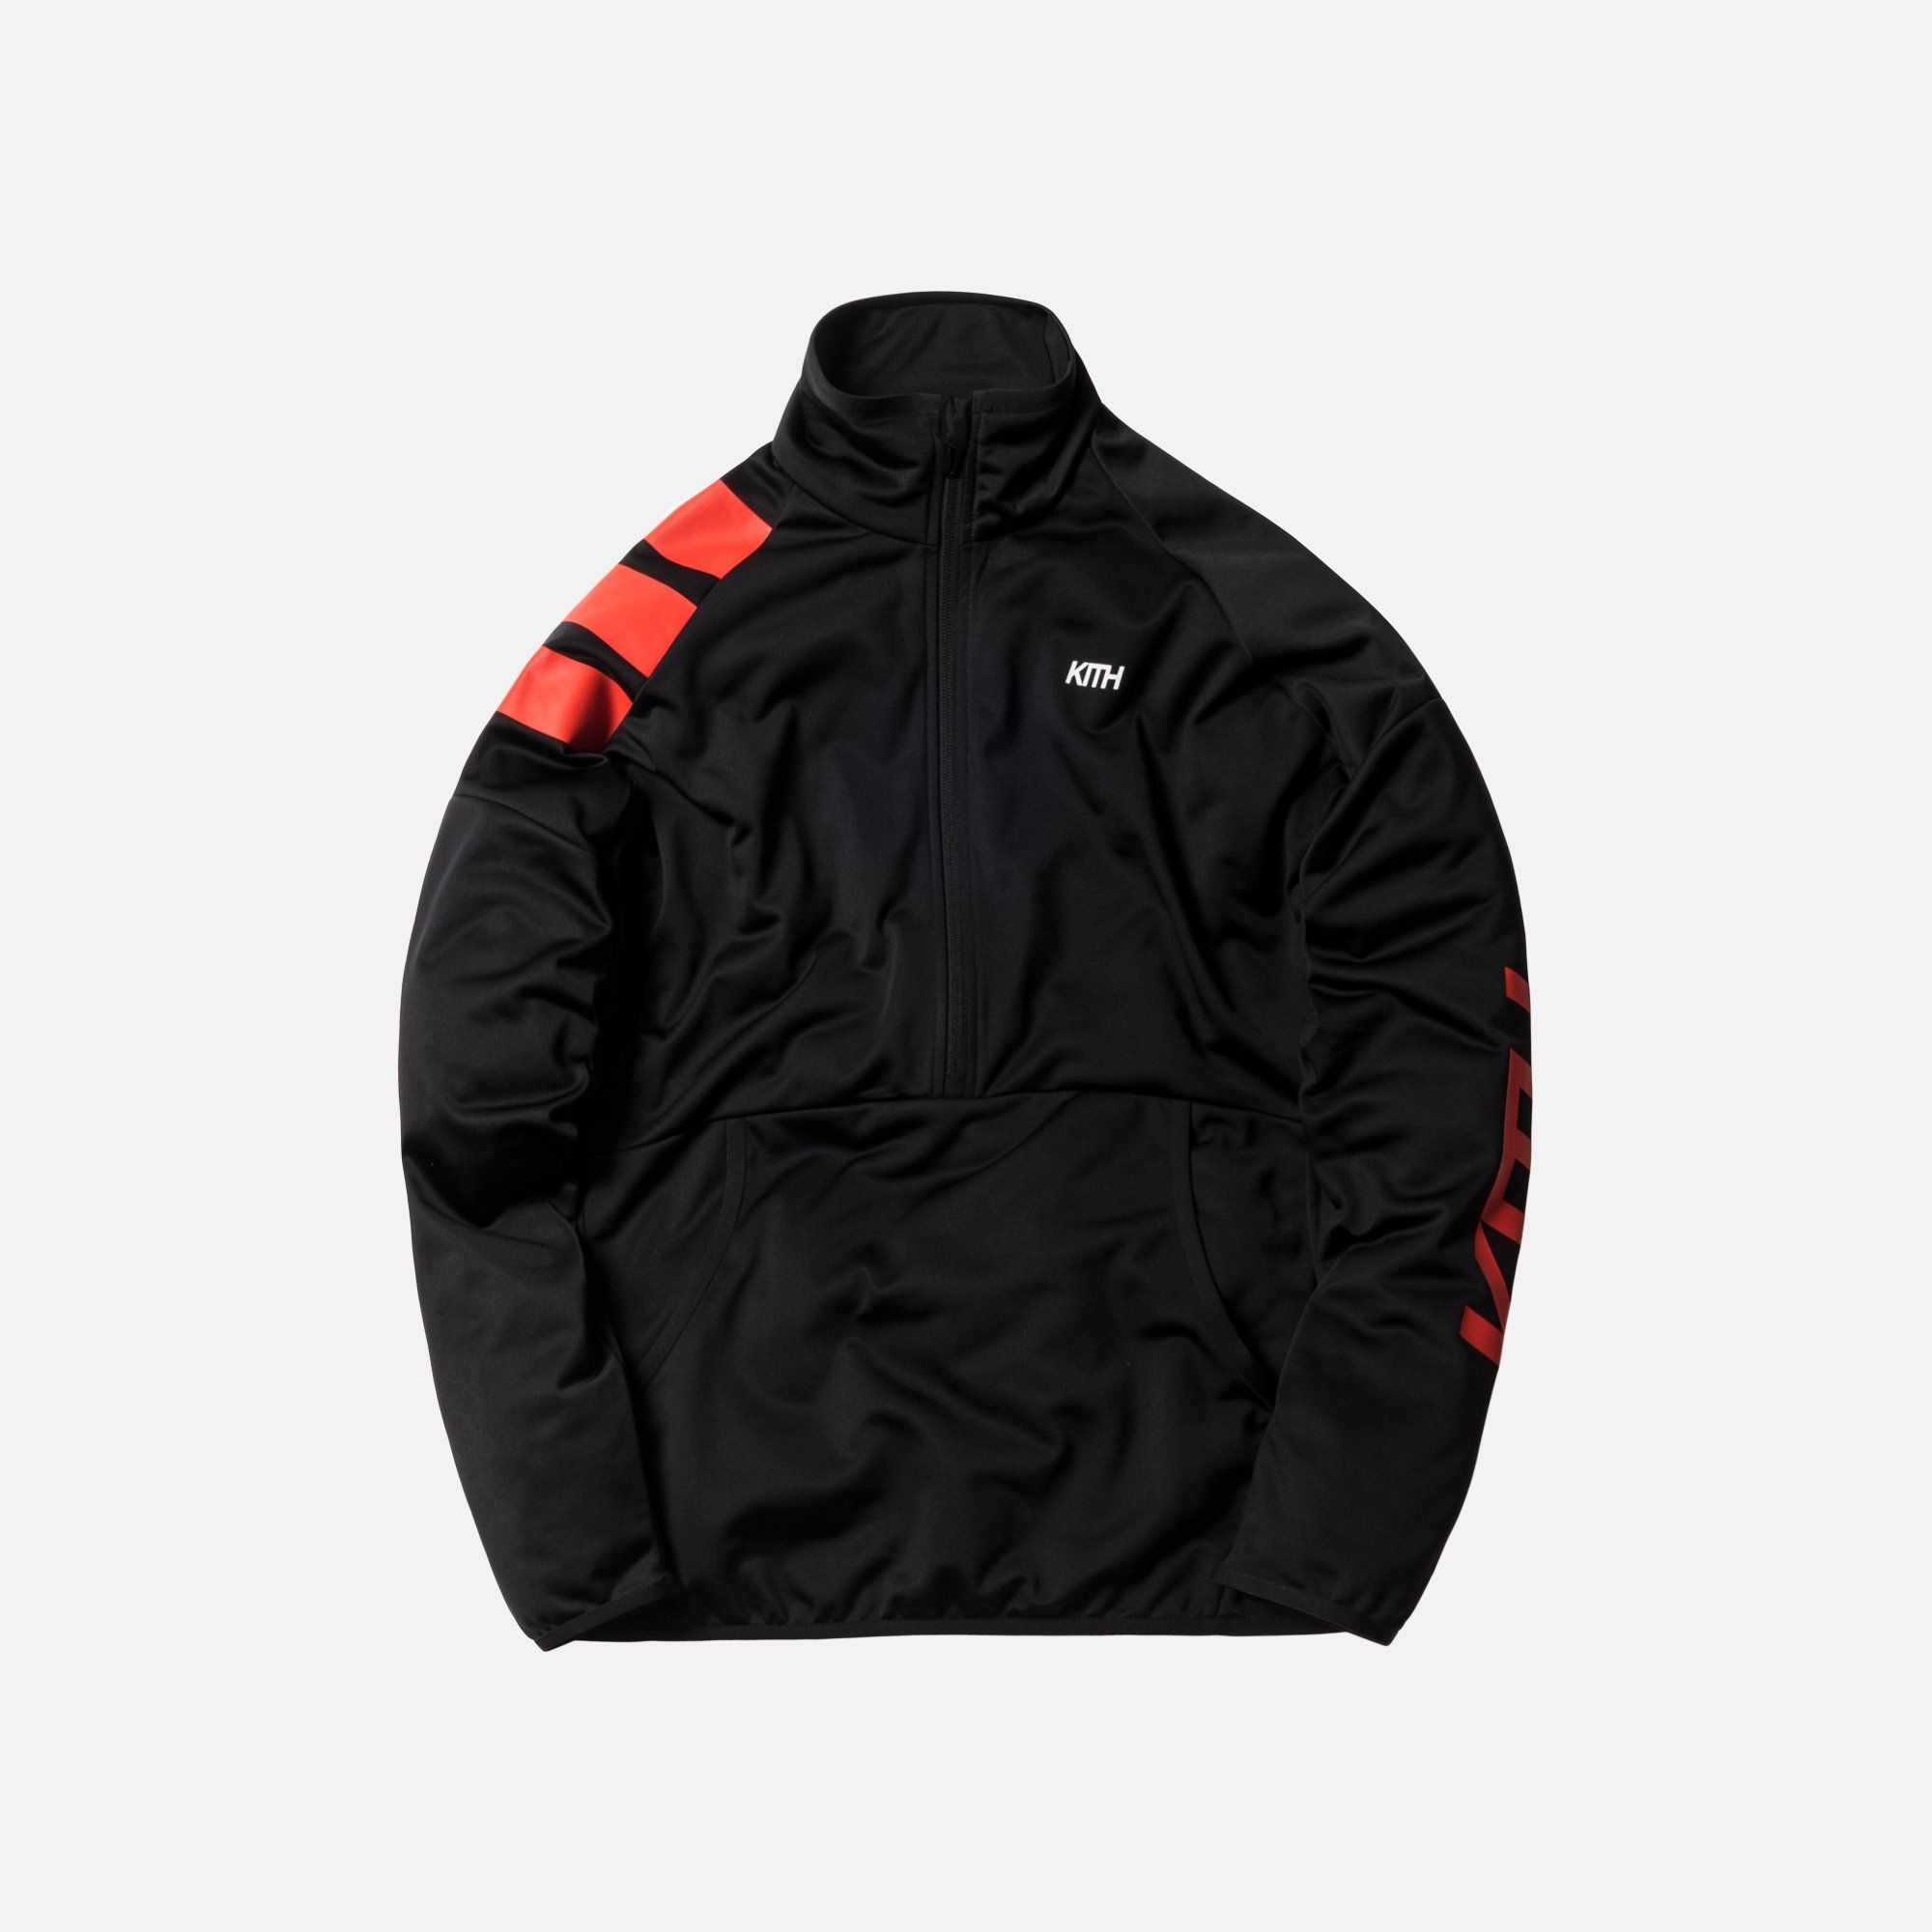 6f8c34659 Kith x adidas Soccer Quarter-Zip Jacket - Cobras | style in 2019 ...